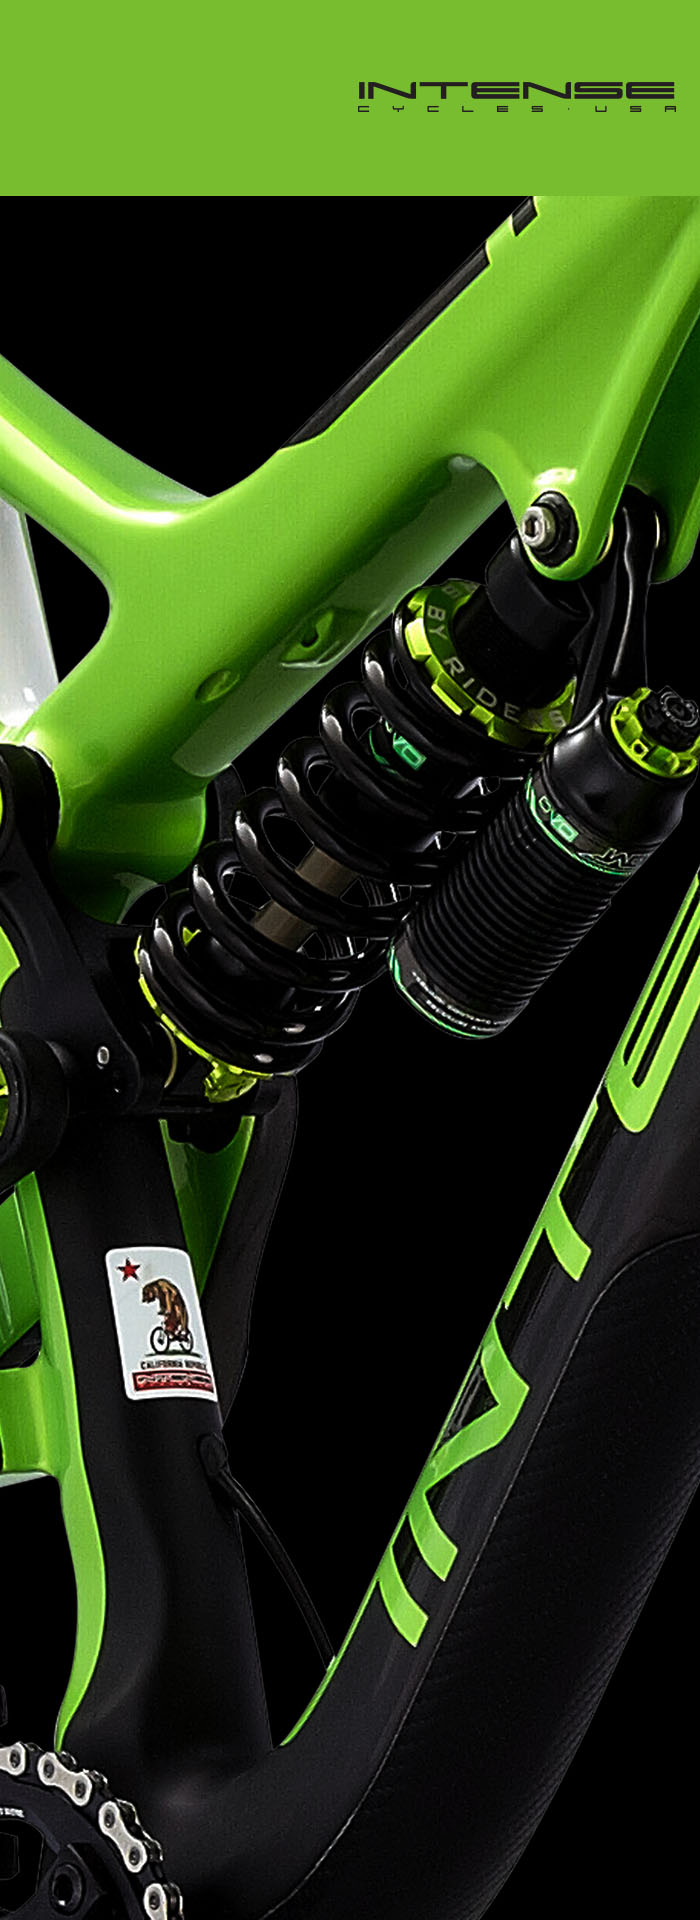 First Look: Limited DVO Edition 2015 Intense Tracer Carbon